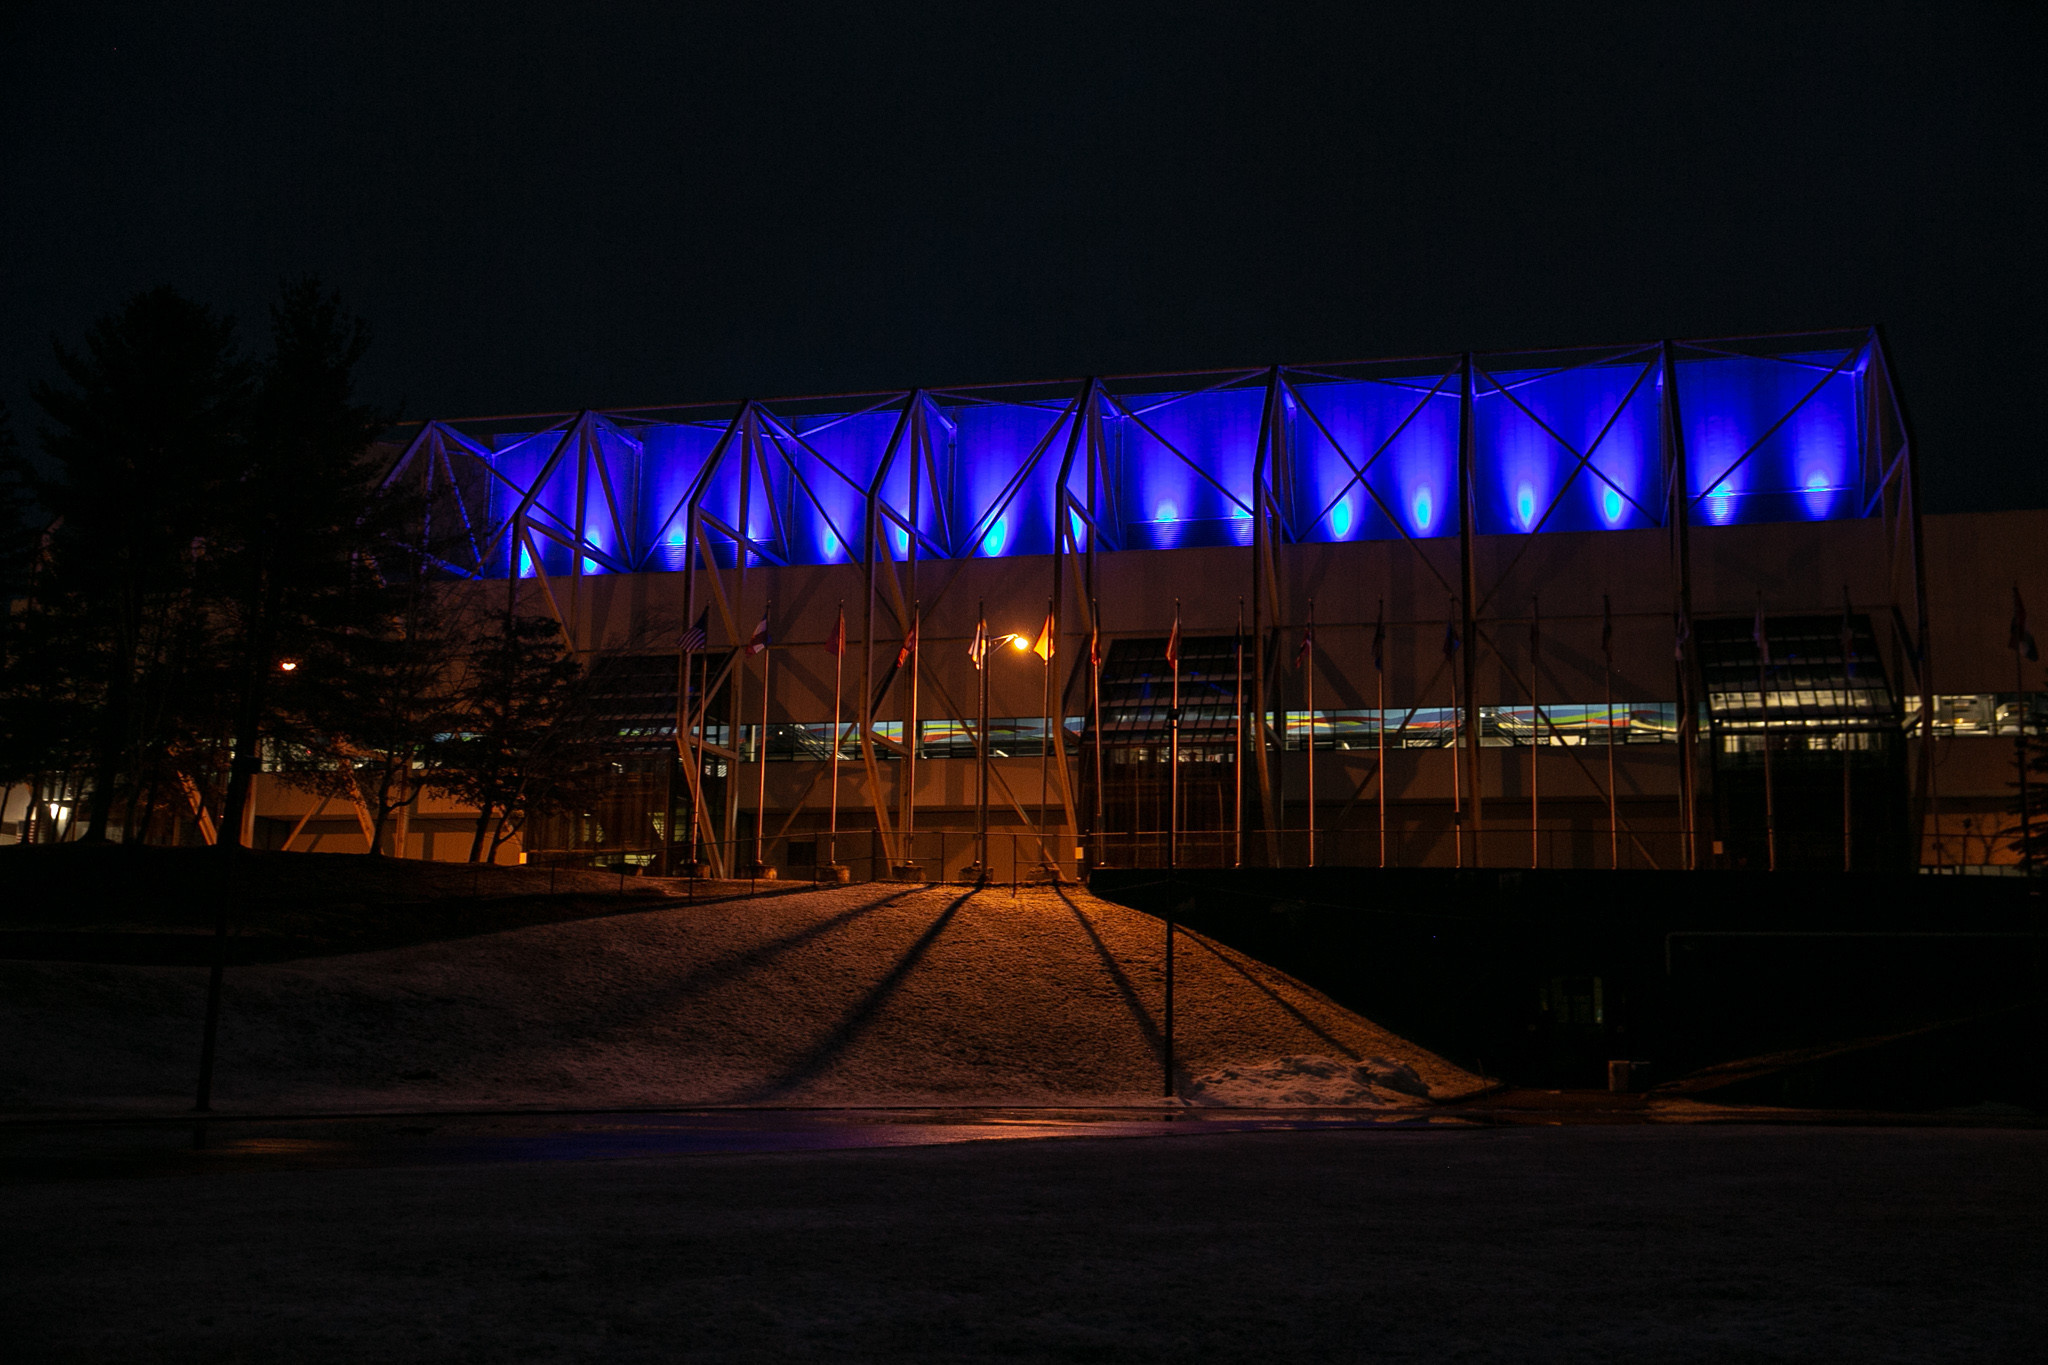 Lake Placid Olympic venues go blue to support health workers